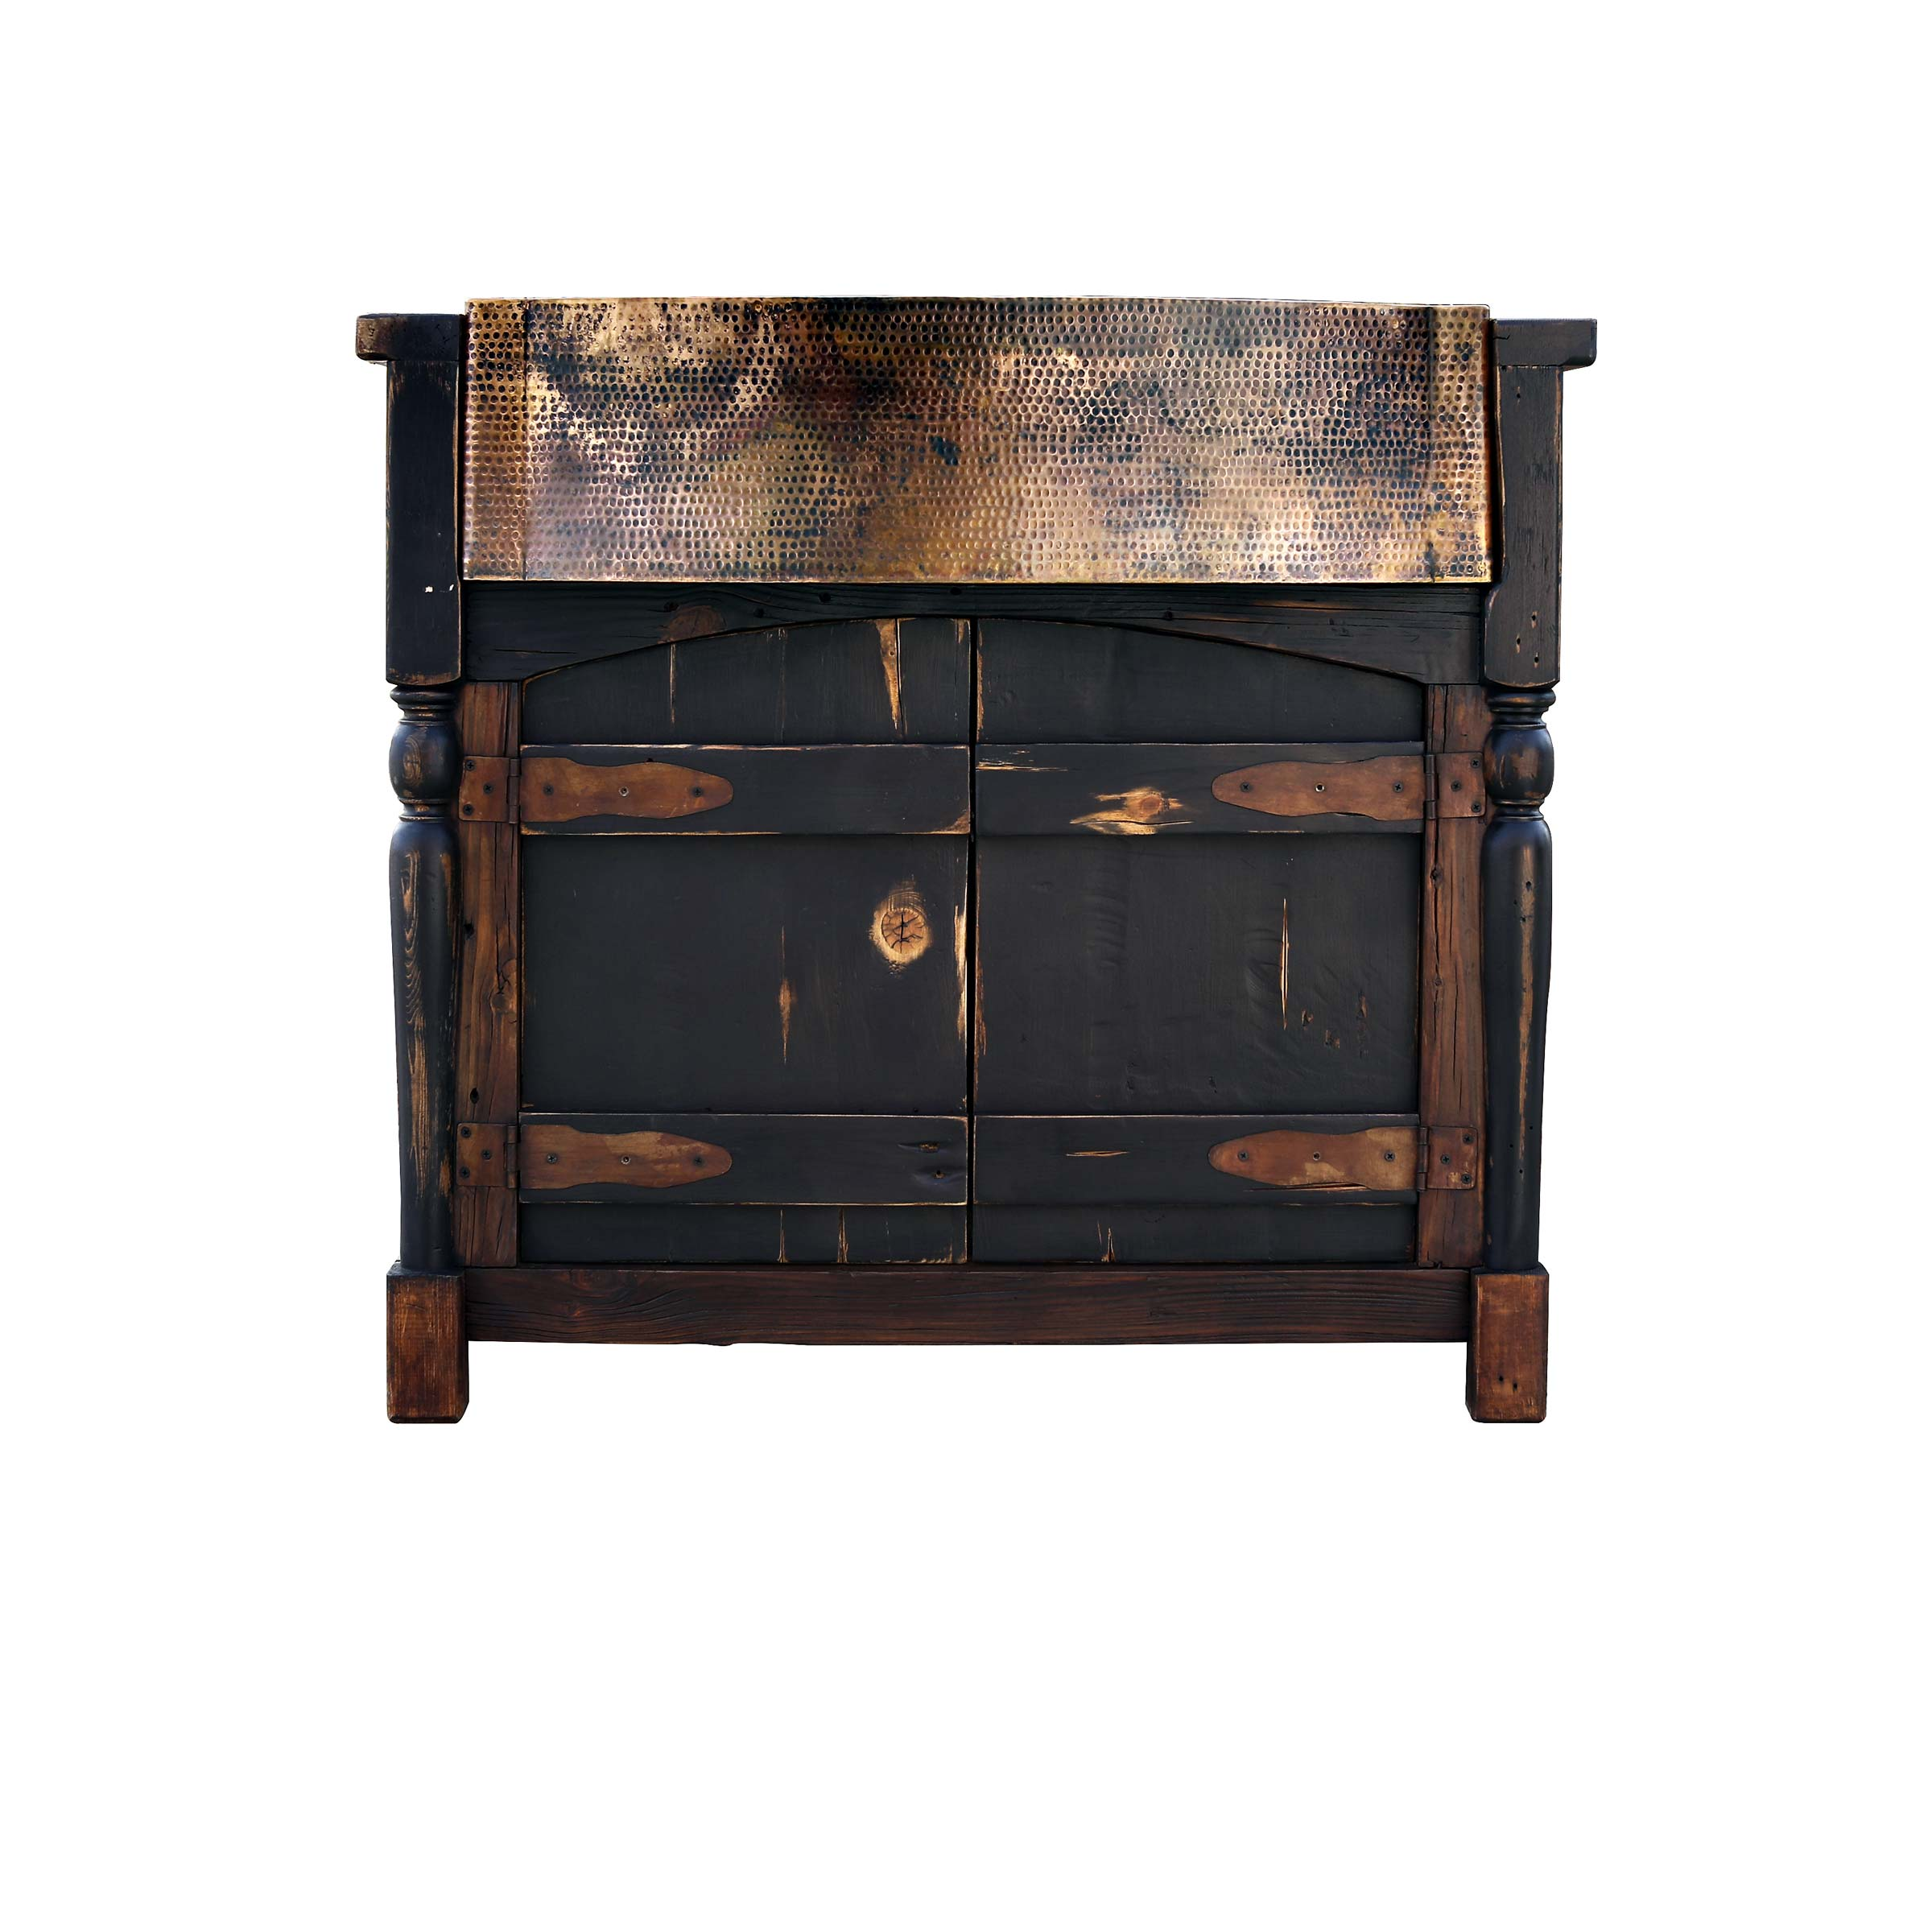 Rustic Bathroom Vanities And Sinks Purchase Rustic Bathroom Vanities Online